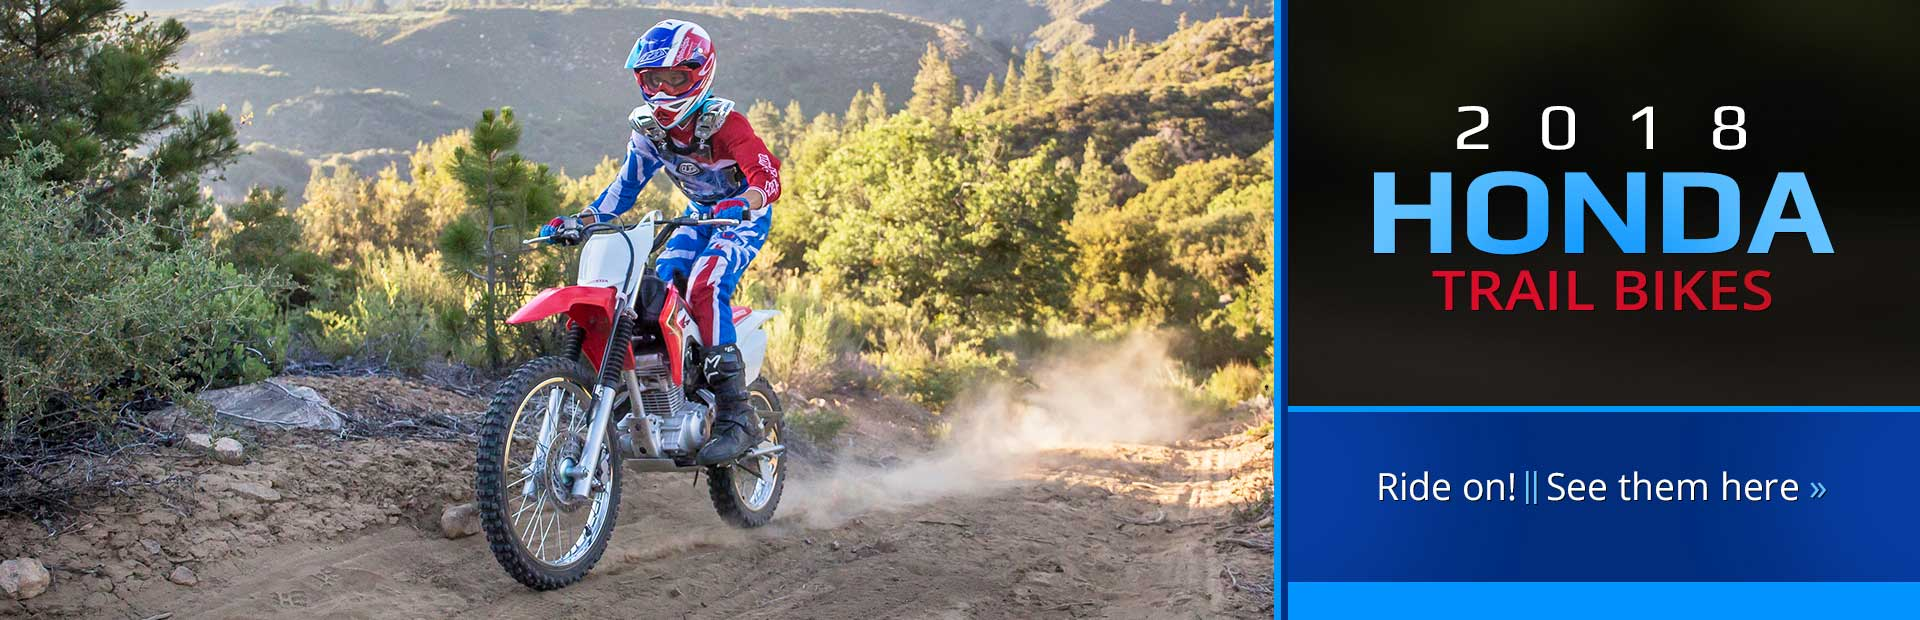 2018 Honda Trail Bikes: Click here to view our selection!